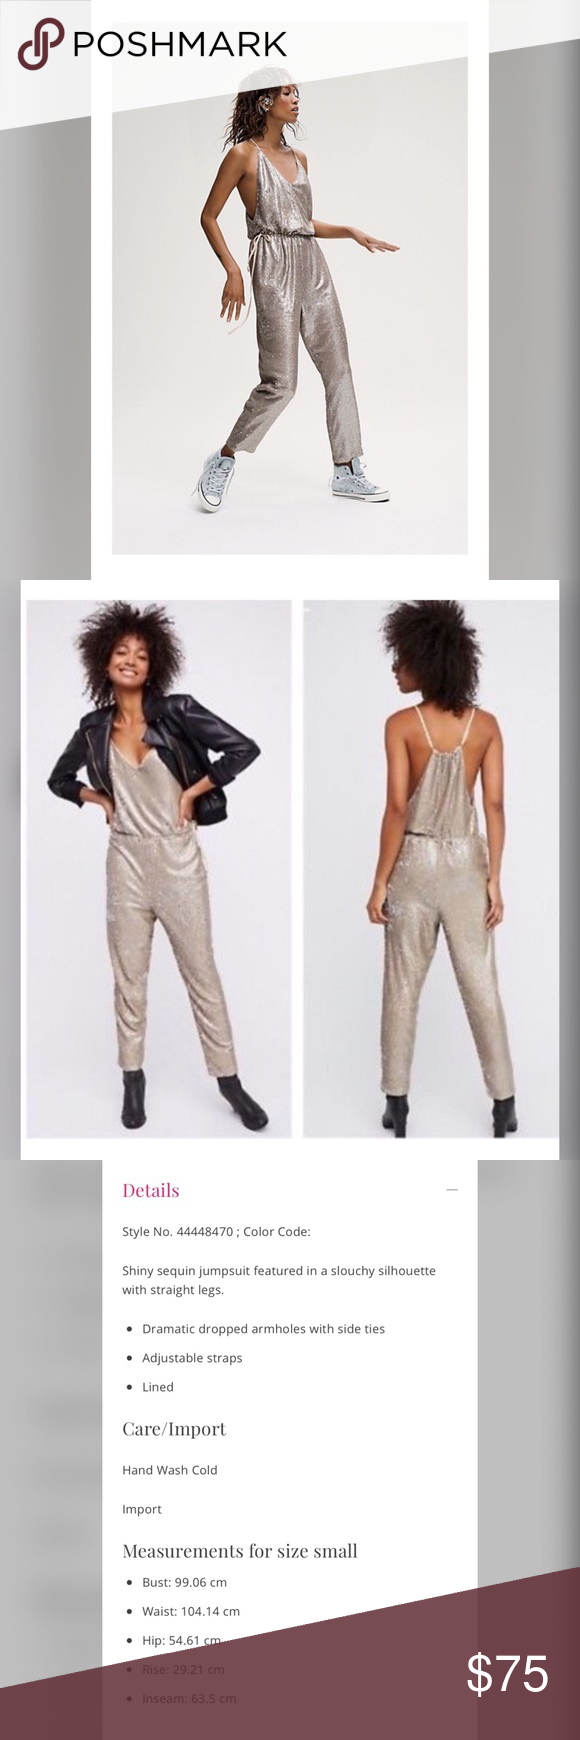 Free People Sequin Pantsuit In 2018 My Posh Picks Sequins